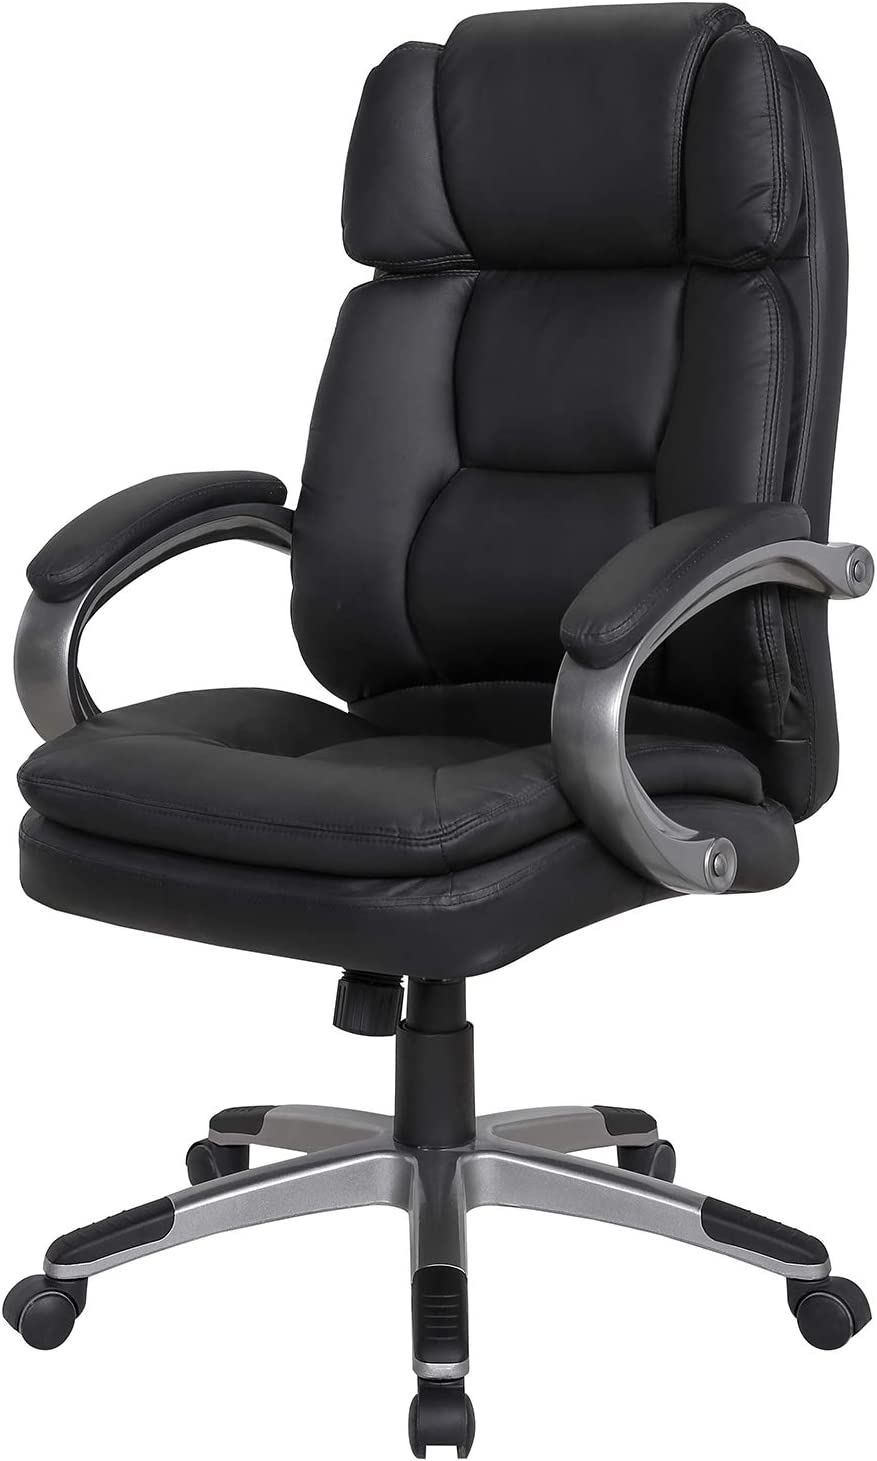 LCH High Back Leather Fabric Office Chair with Adjustable Tilt Angle – Computer Desk Chair with Thick Padding for Comfort and Ergonomic Design for Lumbar Support